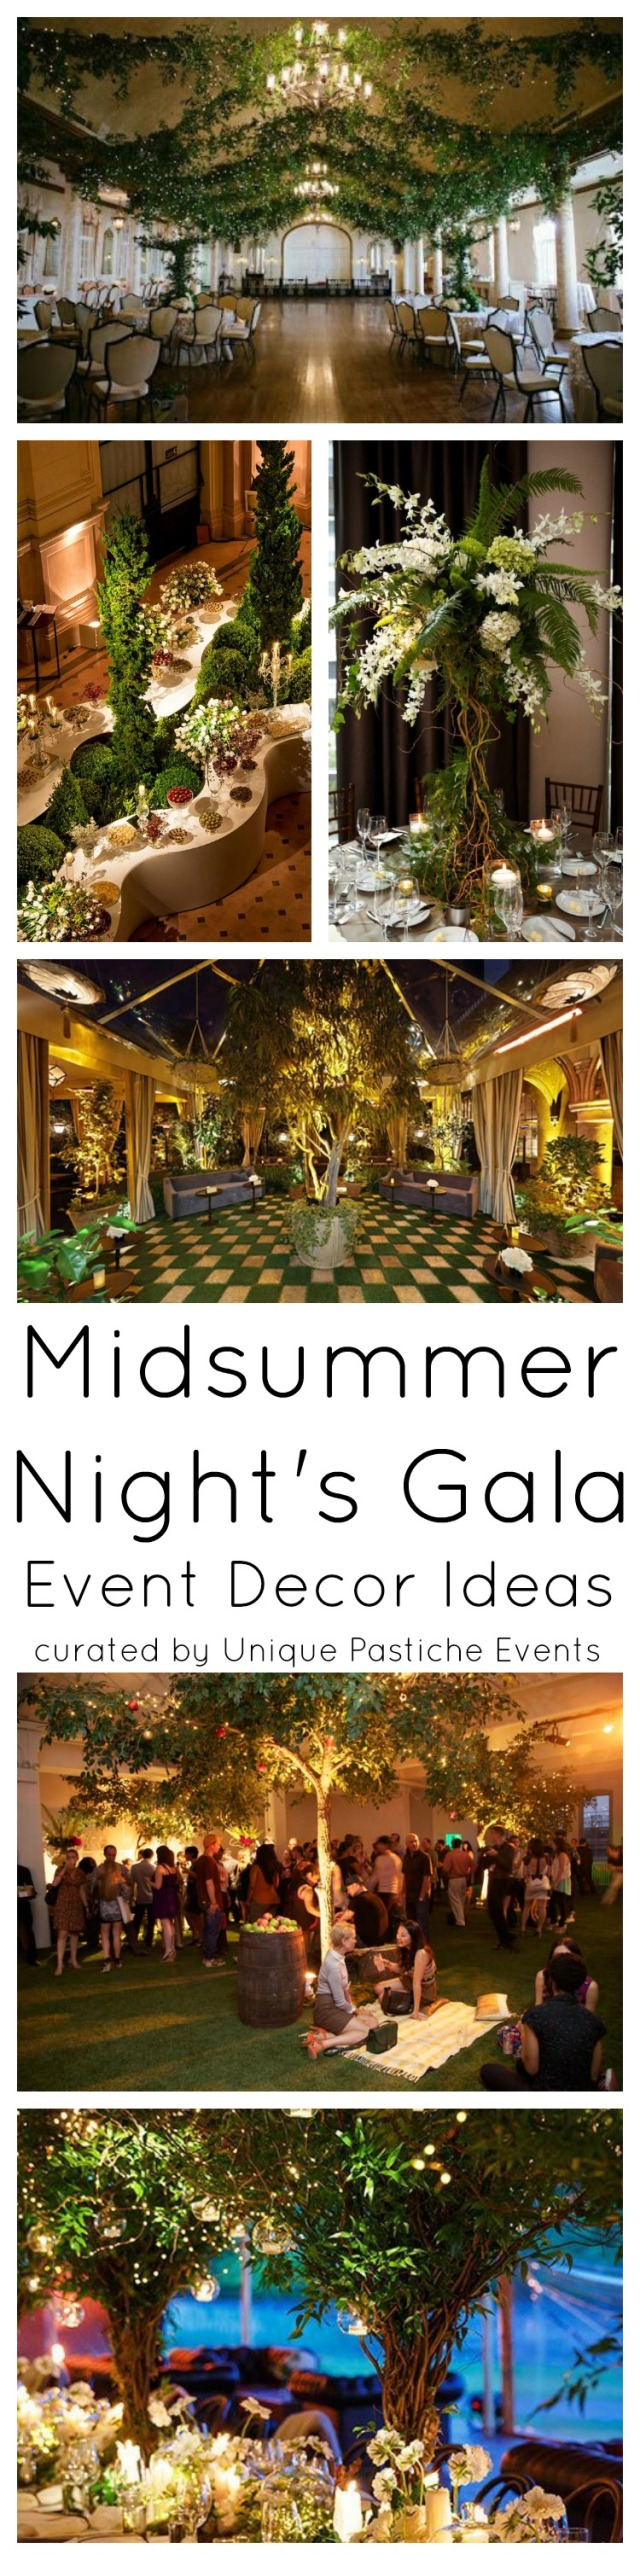 Midsummer Night's Gala Event Decor Ideas